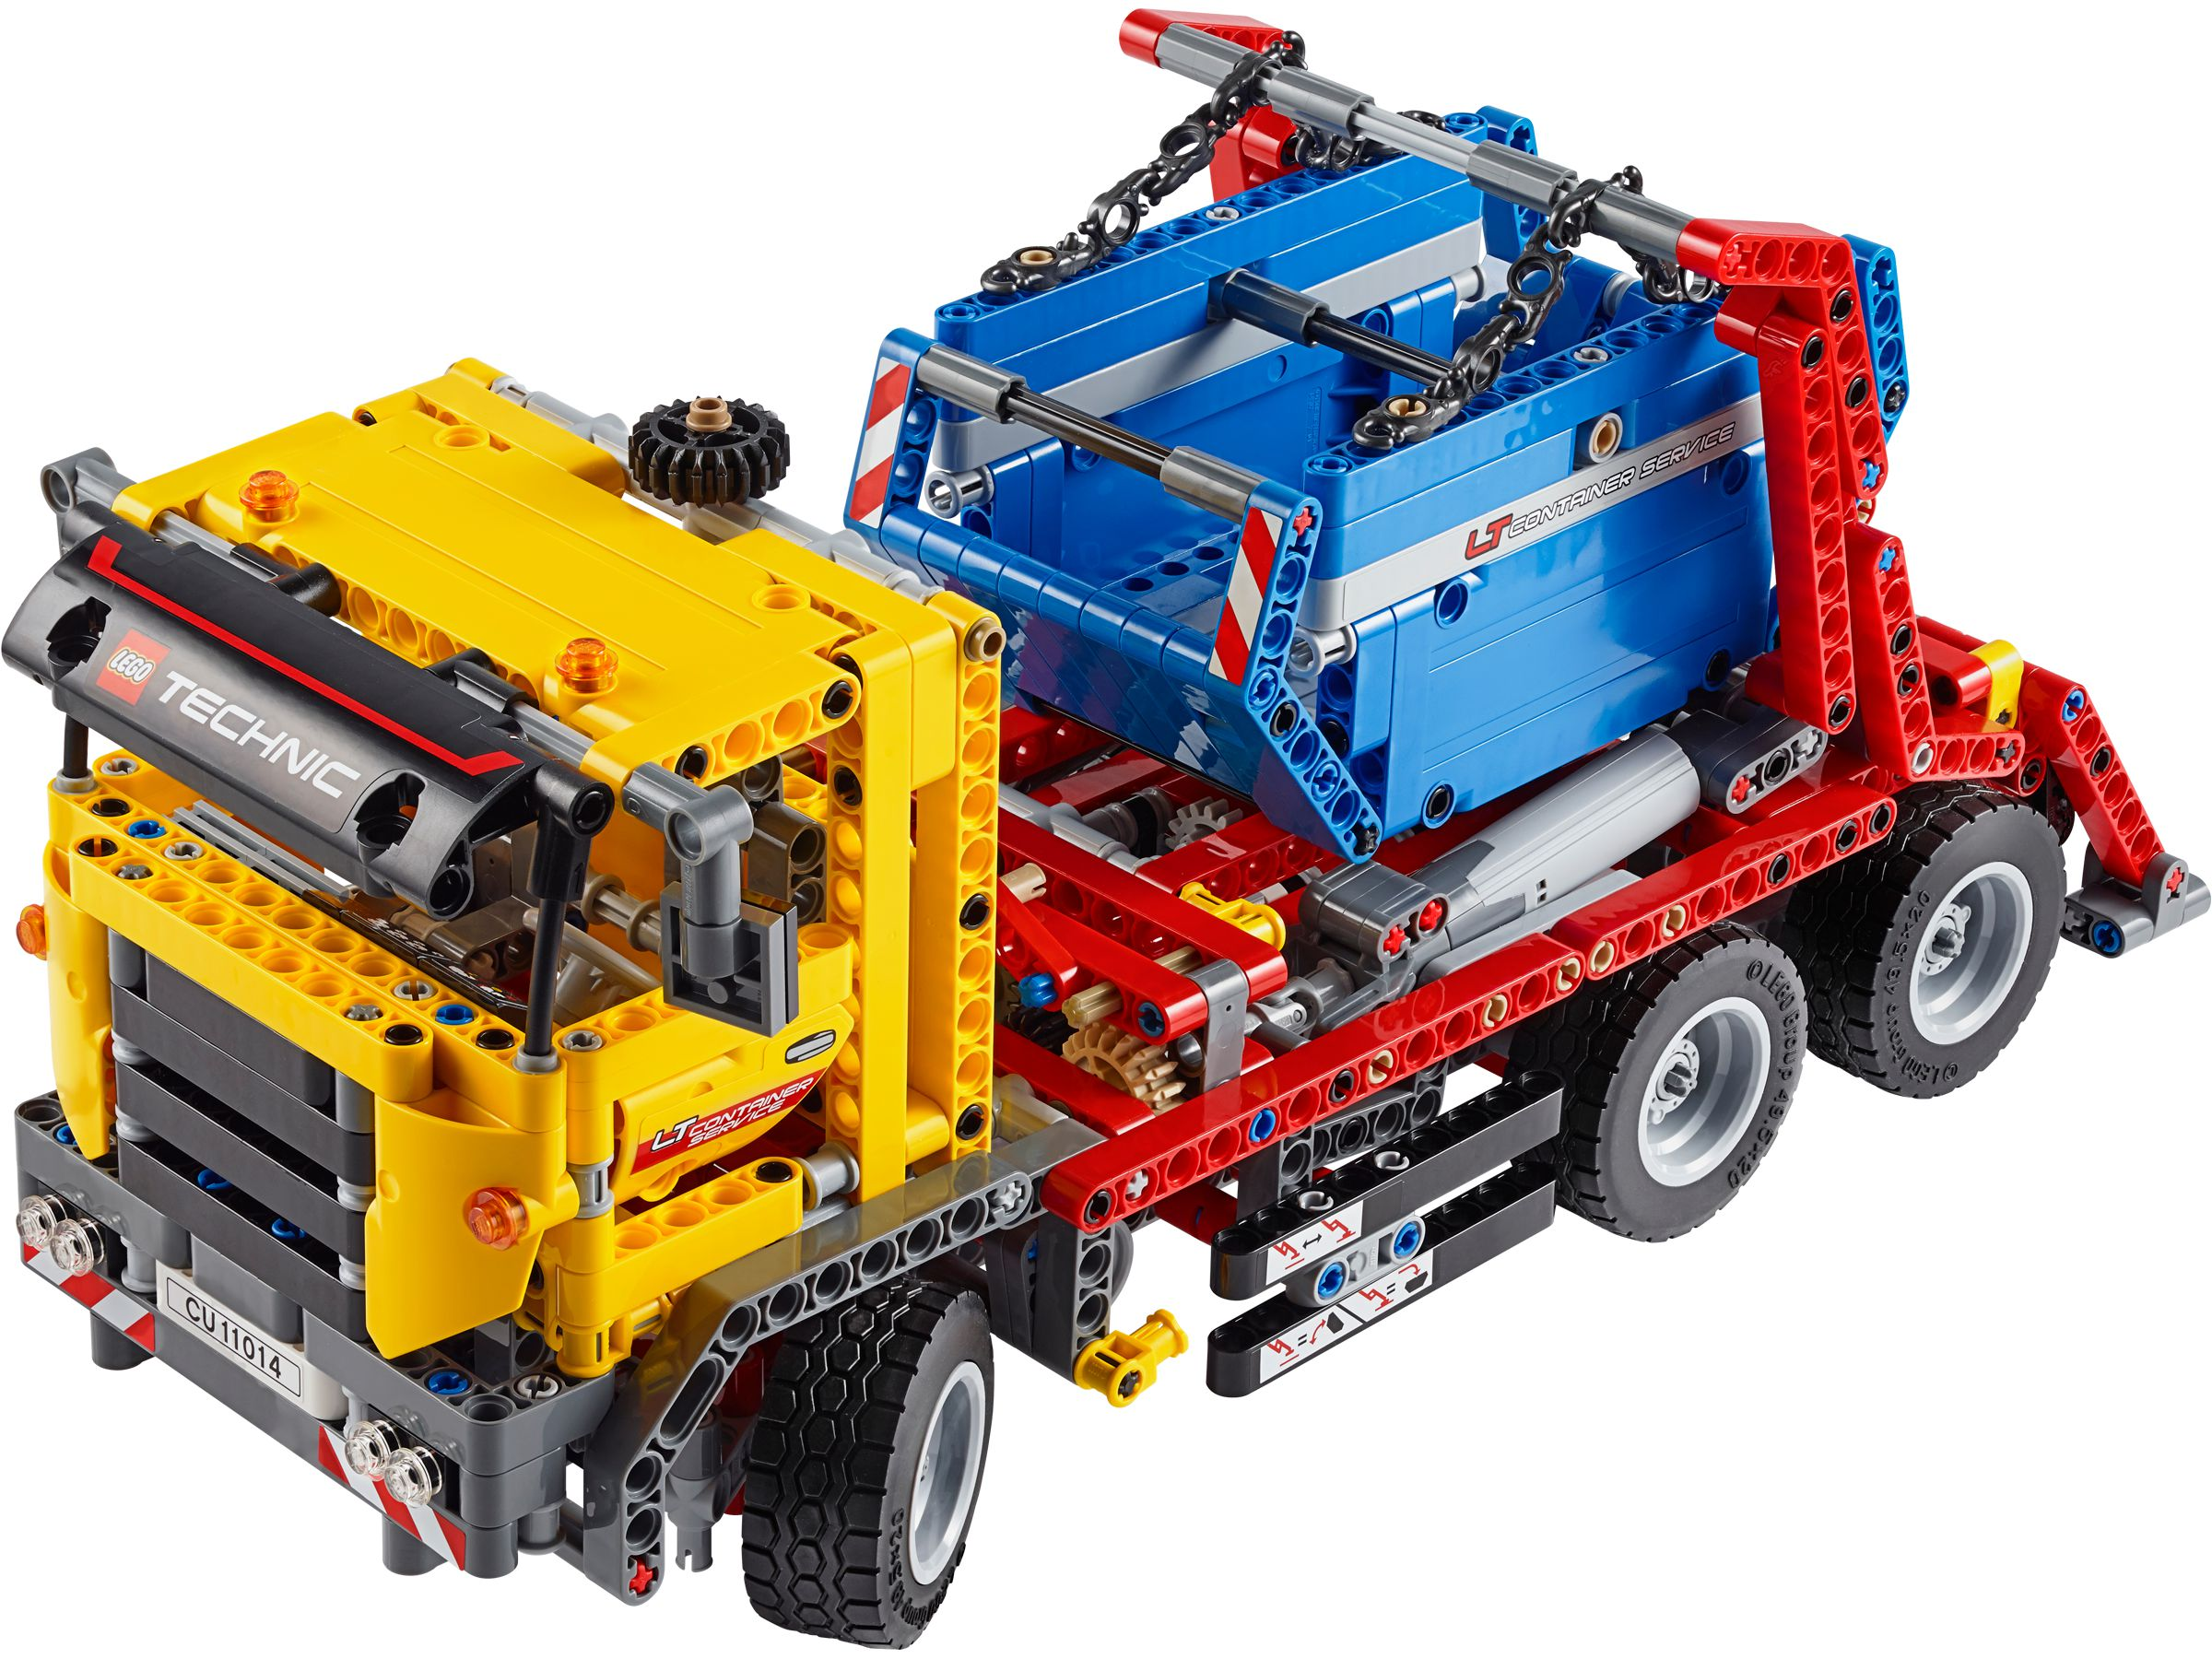 LEGO Technic 42024 Container-Truck LEGO_42024.jpg